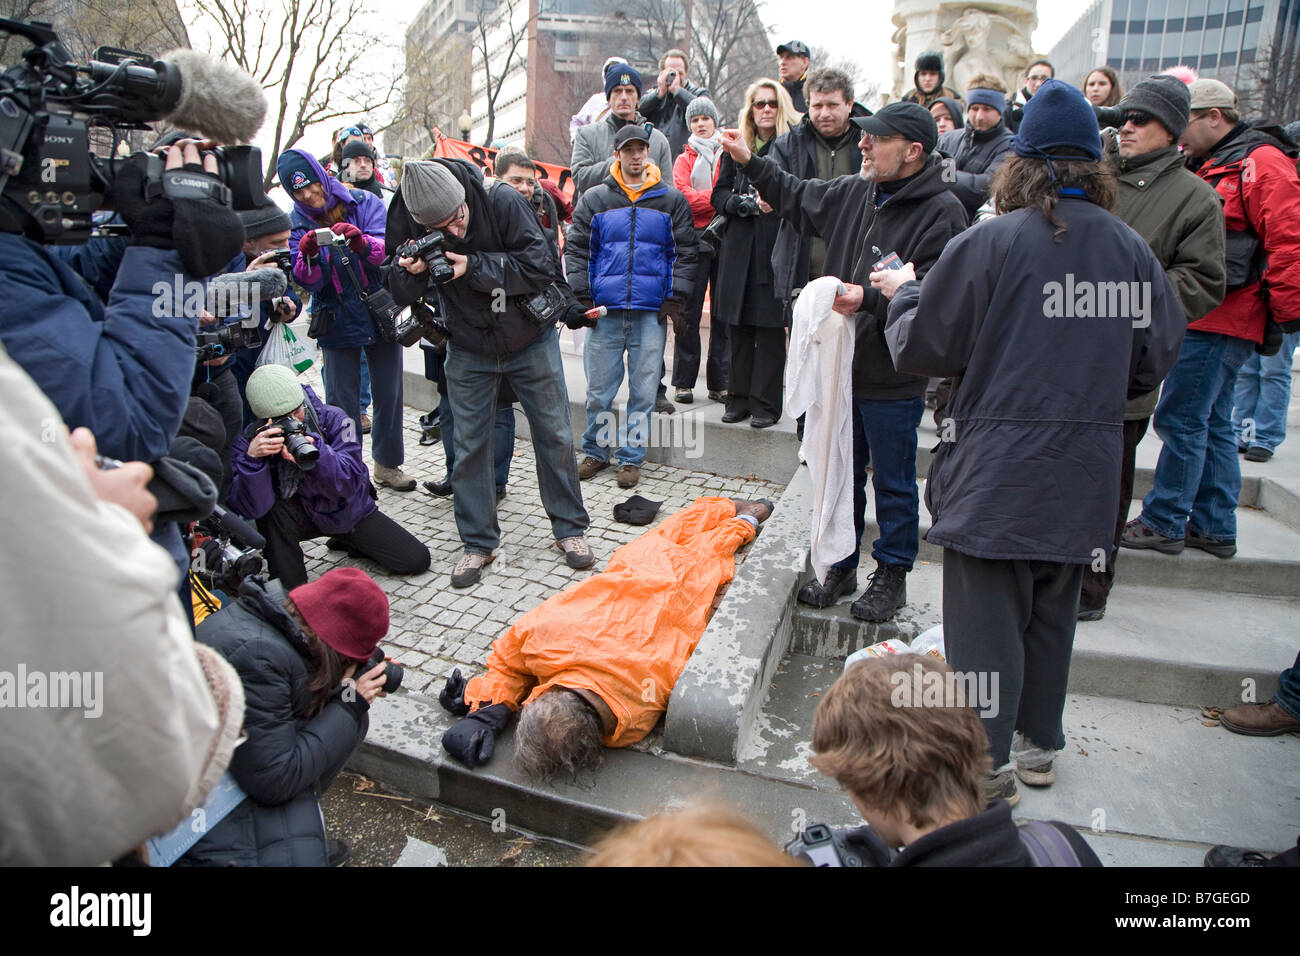 Anti-Torture Activists Demonstrate Waterboarding - Stock Image